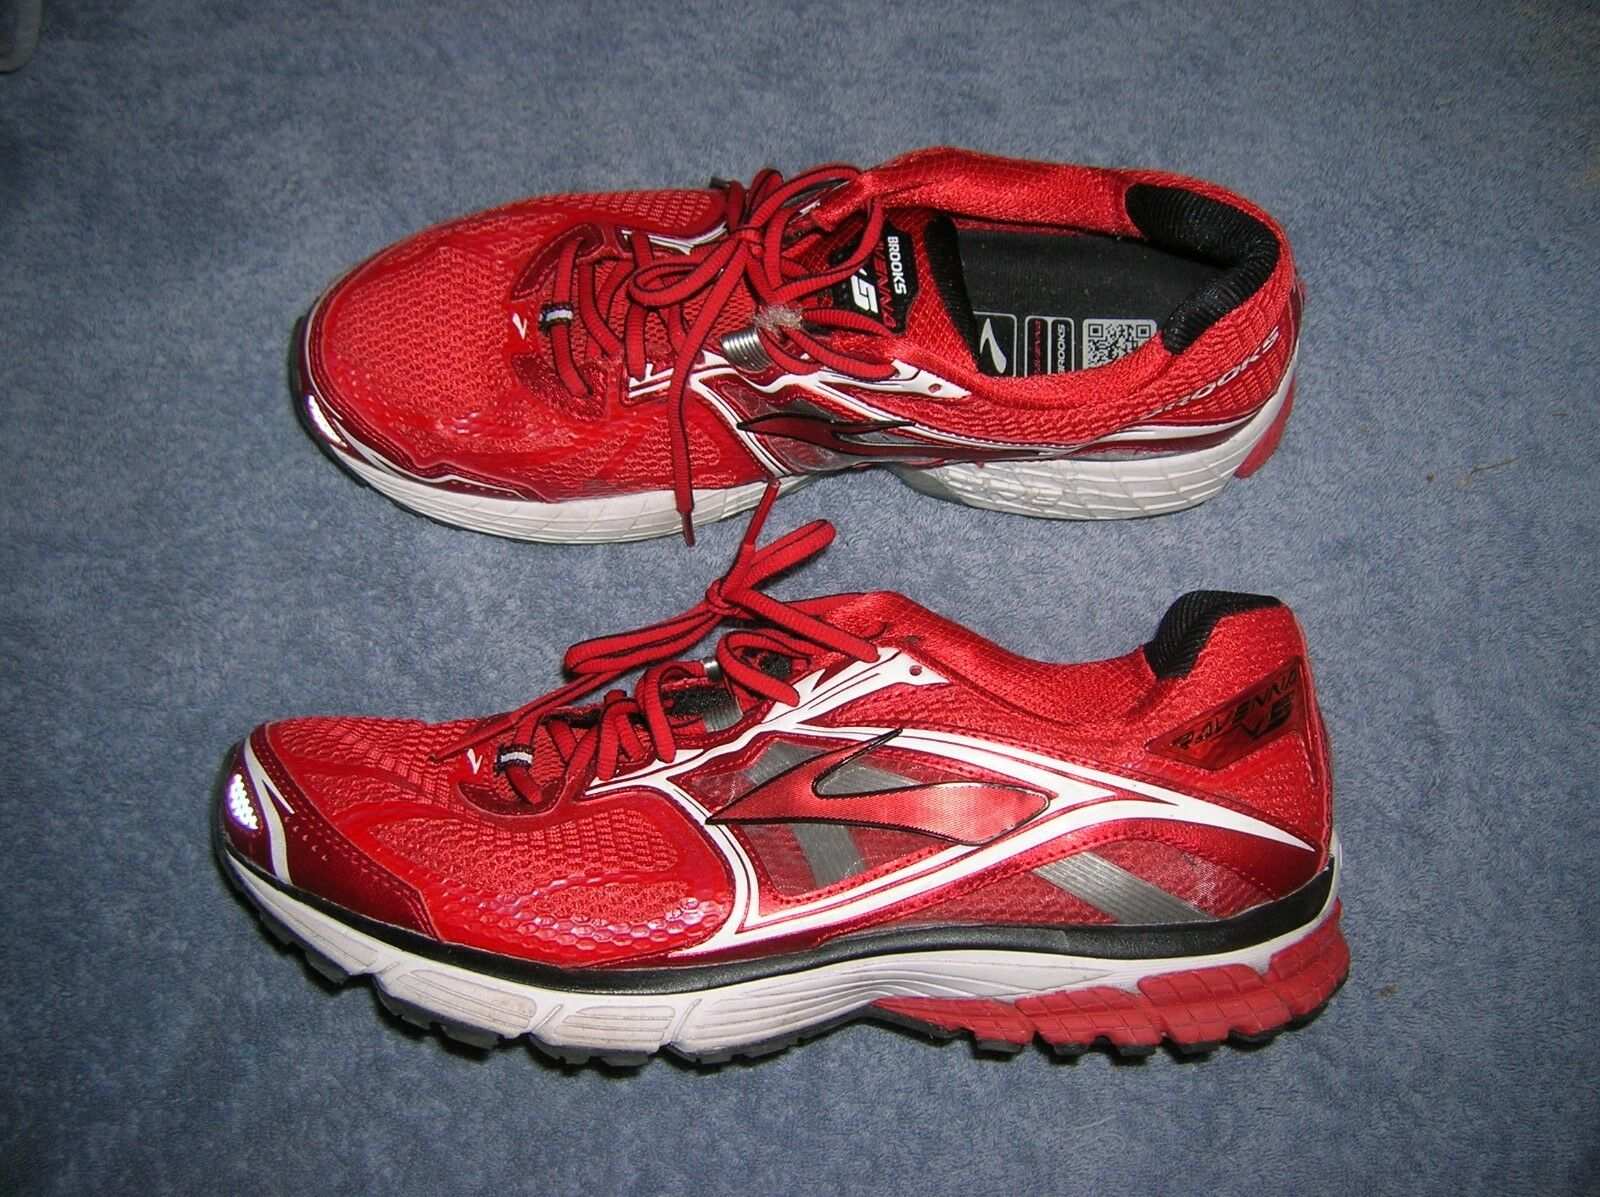 Brooks Ravenna 5 Running Sneakers shoes Mens 13 Red White Trainers Gym Work